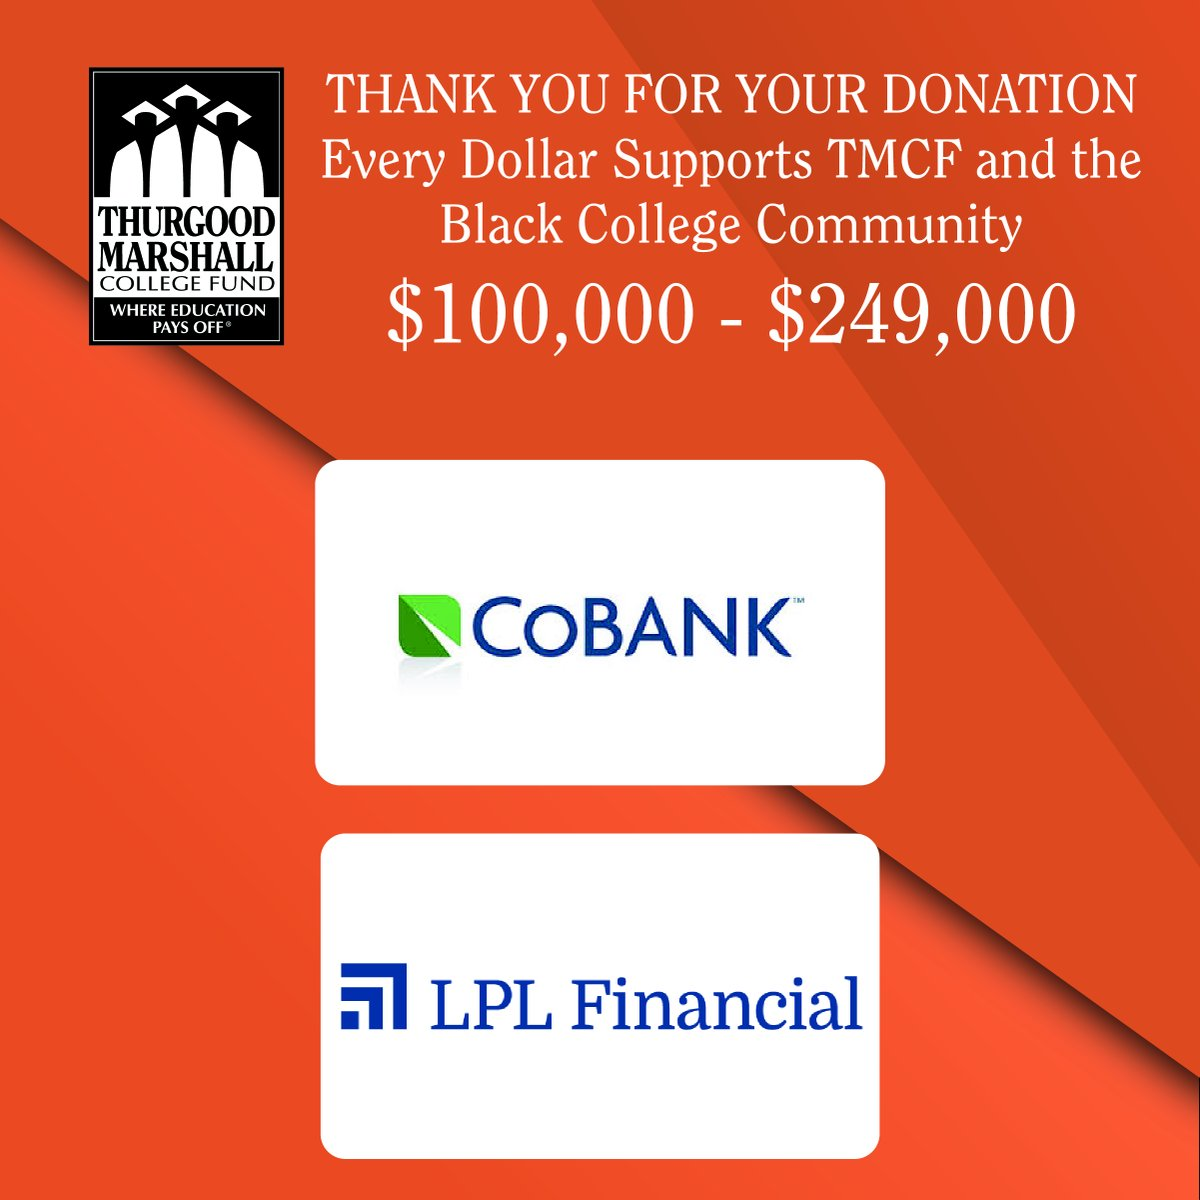 We're grateful for the support of the Black College Community by these amazing orgs!  @HarperCollins, @BlueYonder, @churchmutual, @MazdaUSA, @SpiritAirlines, @bostonfdn, @DreamBox_Learn, @redroofinn, @UncommonGoods, @1800CONTACTS, @HourglassMakeup, @CoBank, @LPL, & @f5networks https://t.co/MheG3Ip96M